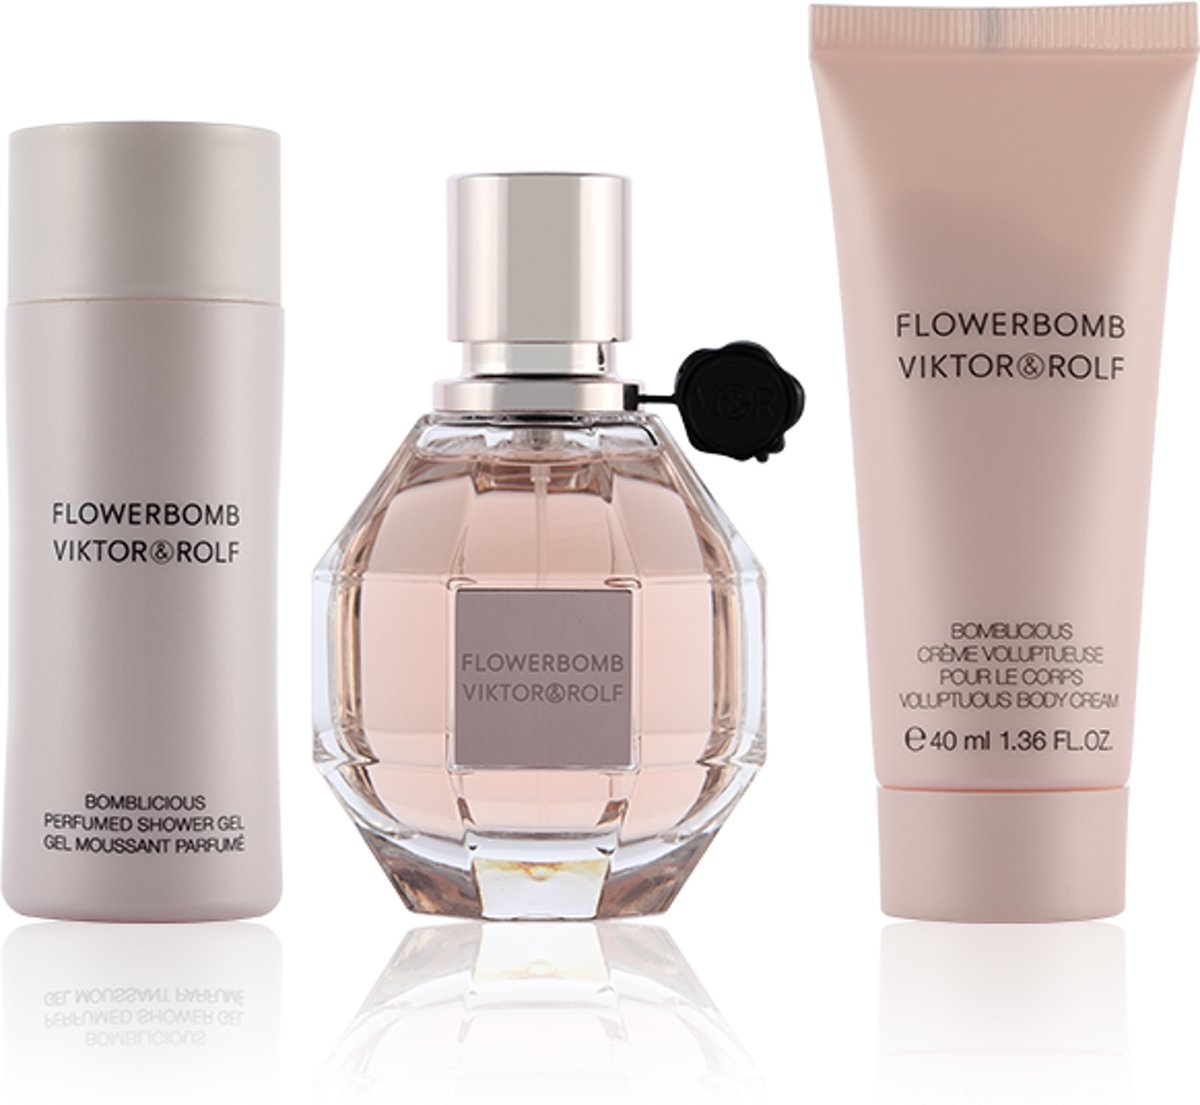 Viktor & Rolf Viktor & Rolf - Eau de parfum - Flowerbomb 50ml eau de parfum + 50ml showergel + 40ml bodycream - Gifts ml